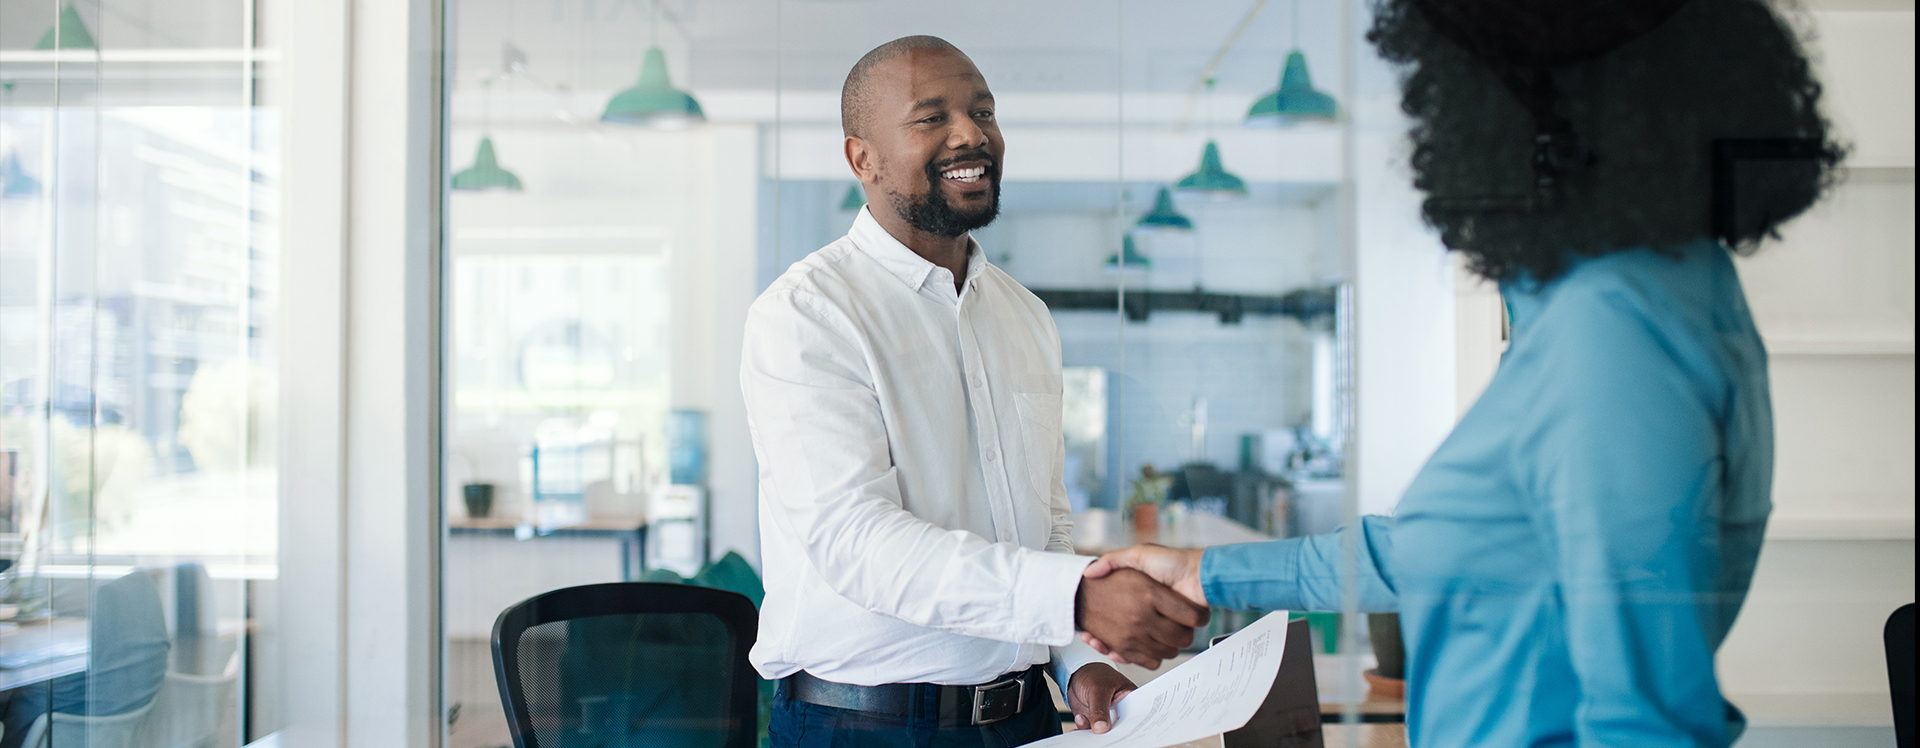 Two professionals shaking hands in a sunlight workspace